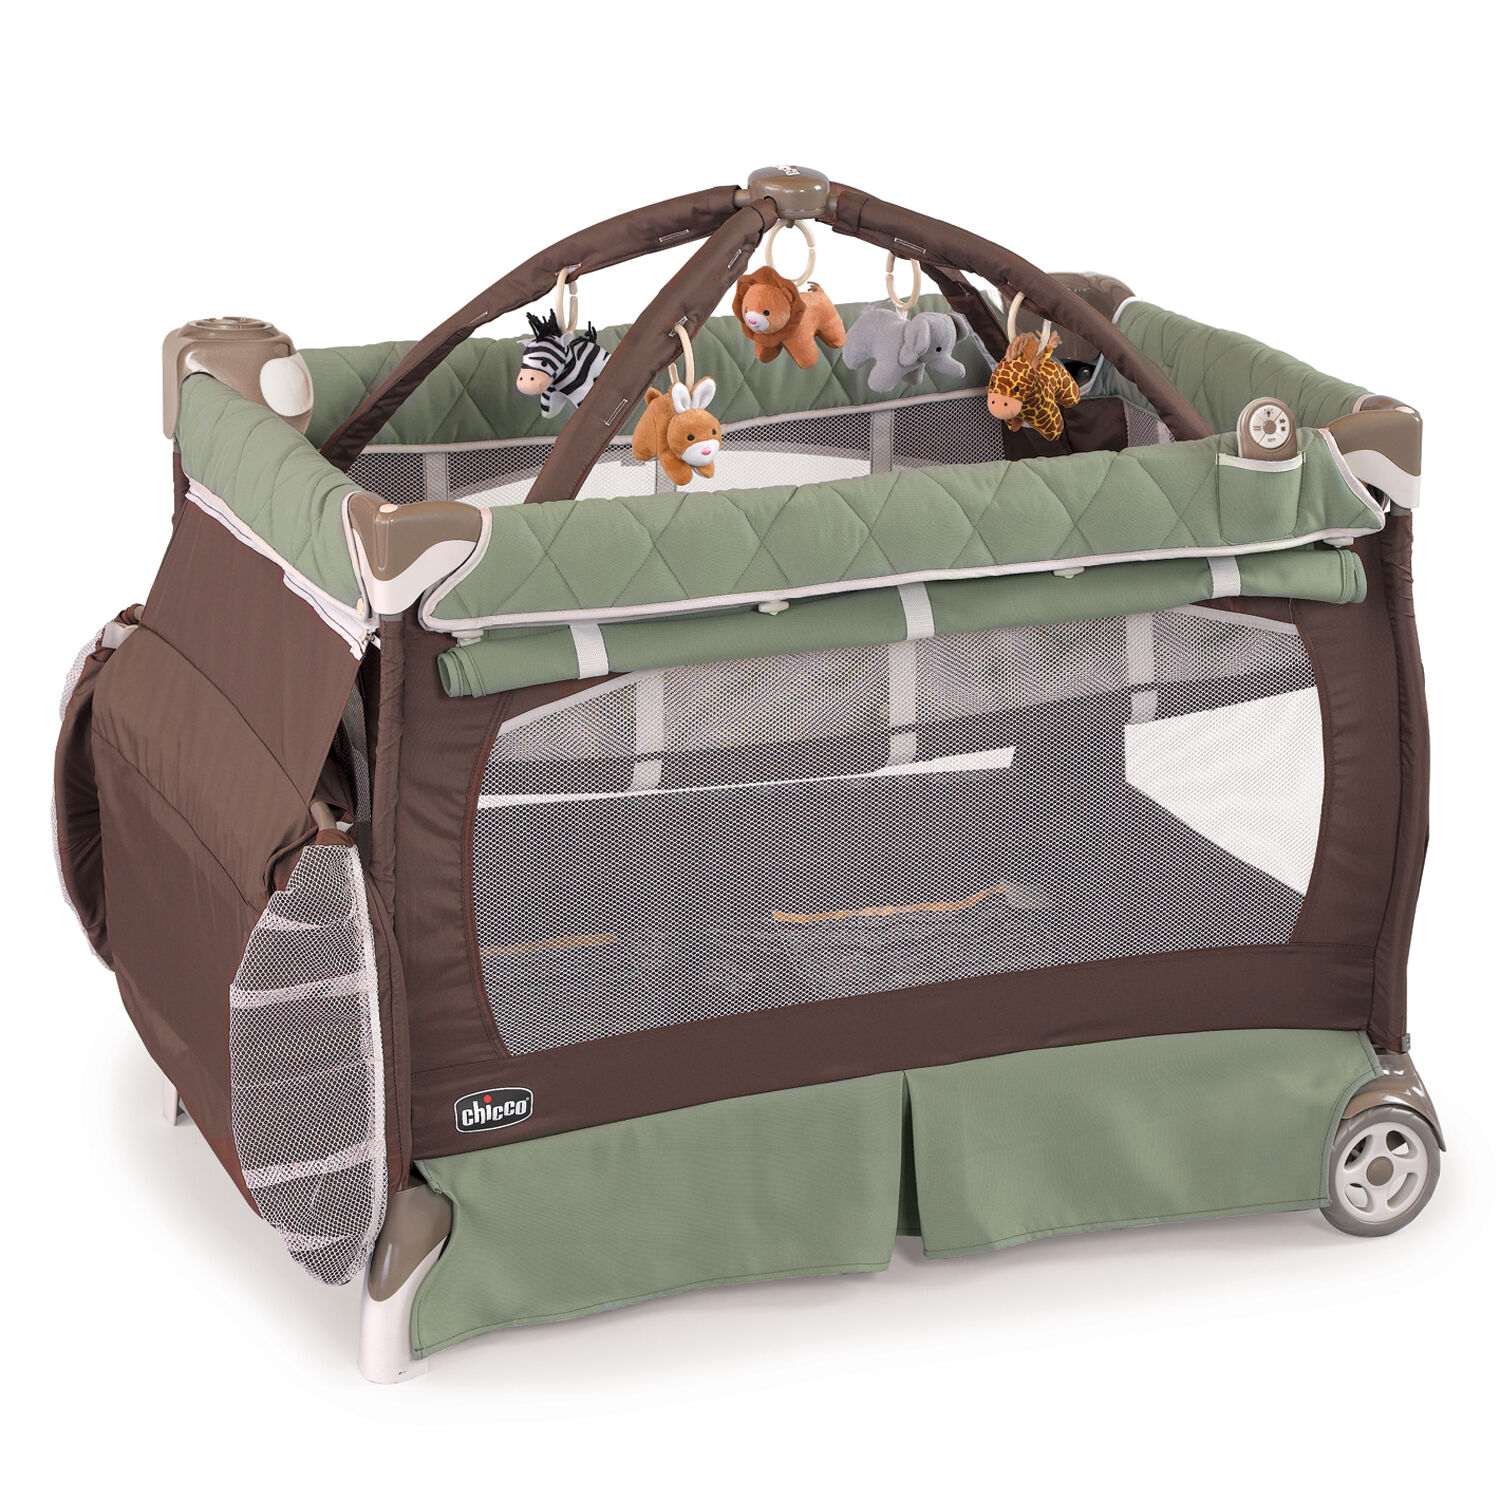 chicco adventure lullaby lx playard rh chiccousa com chicco pack and play manual Chicco Lullaby Pack and Play